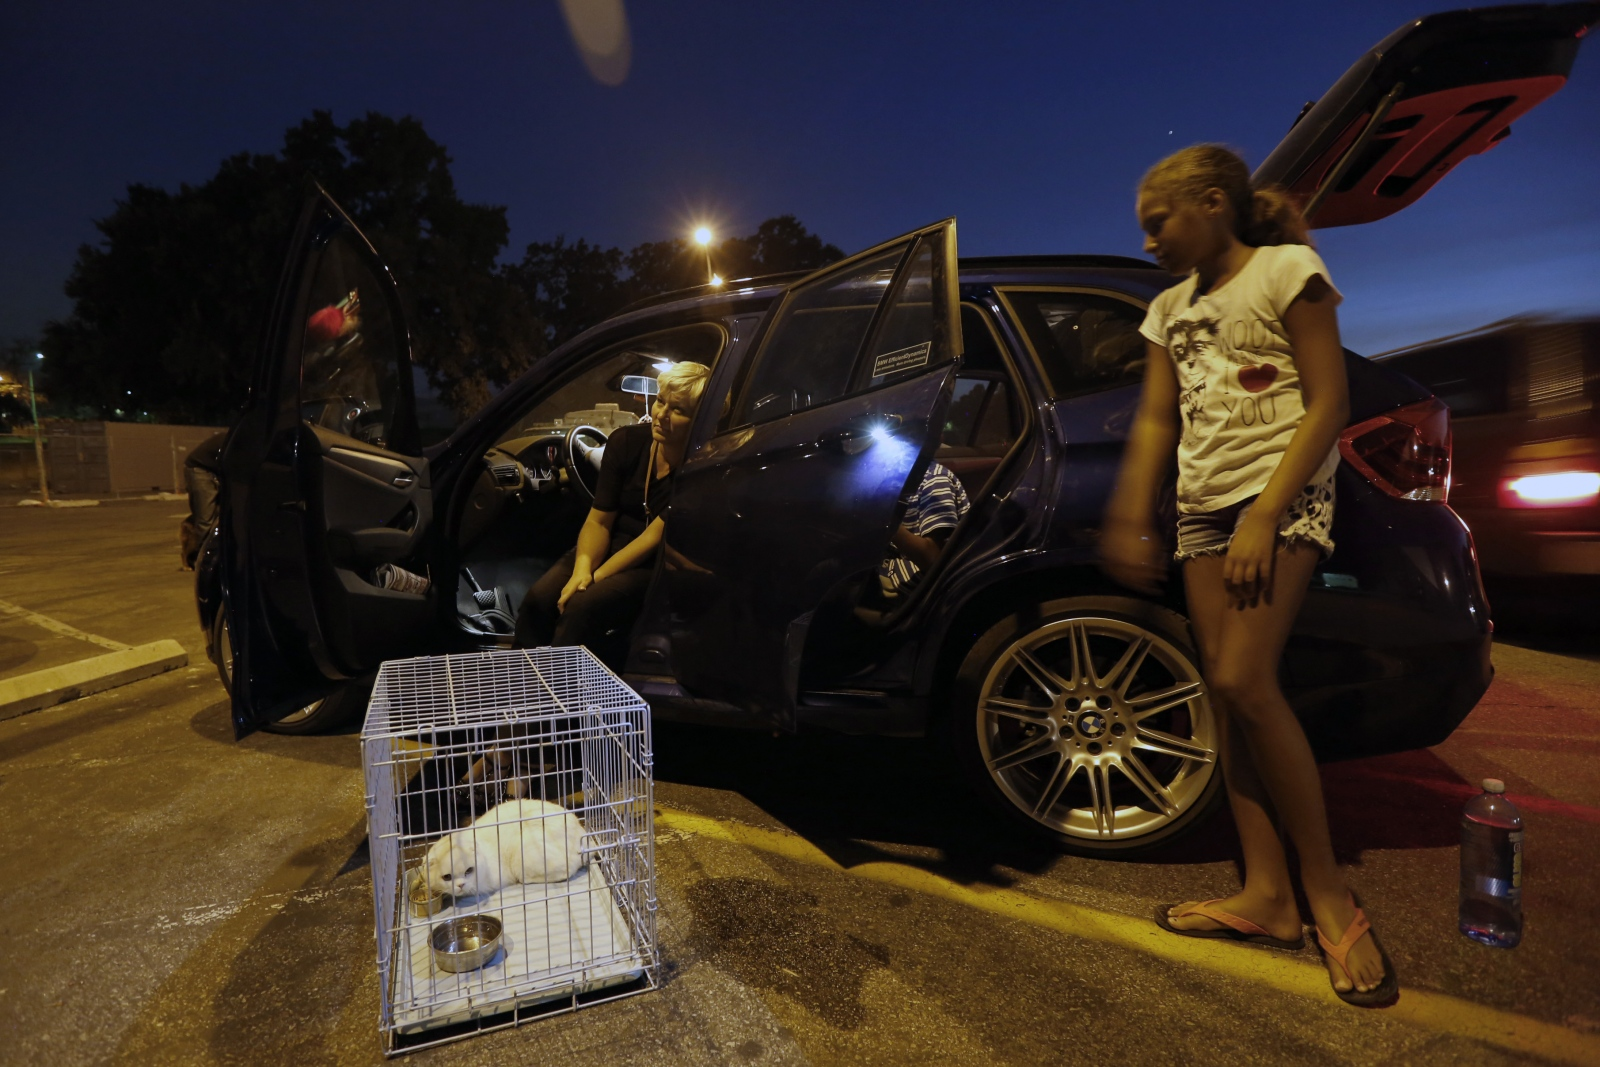 The Kellum family waits for a local veterinarian to house their animals outside of Hart High School in Newhall on Saturday, July 23, 2016. The Kellum family leases a home on Sand Canyon and was evacuated Saturday afternoon. Their animals were boarded with a local veterinarian, and they stayed at the shelter. Katharine Lotze/The Signal